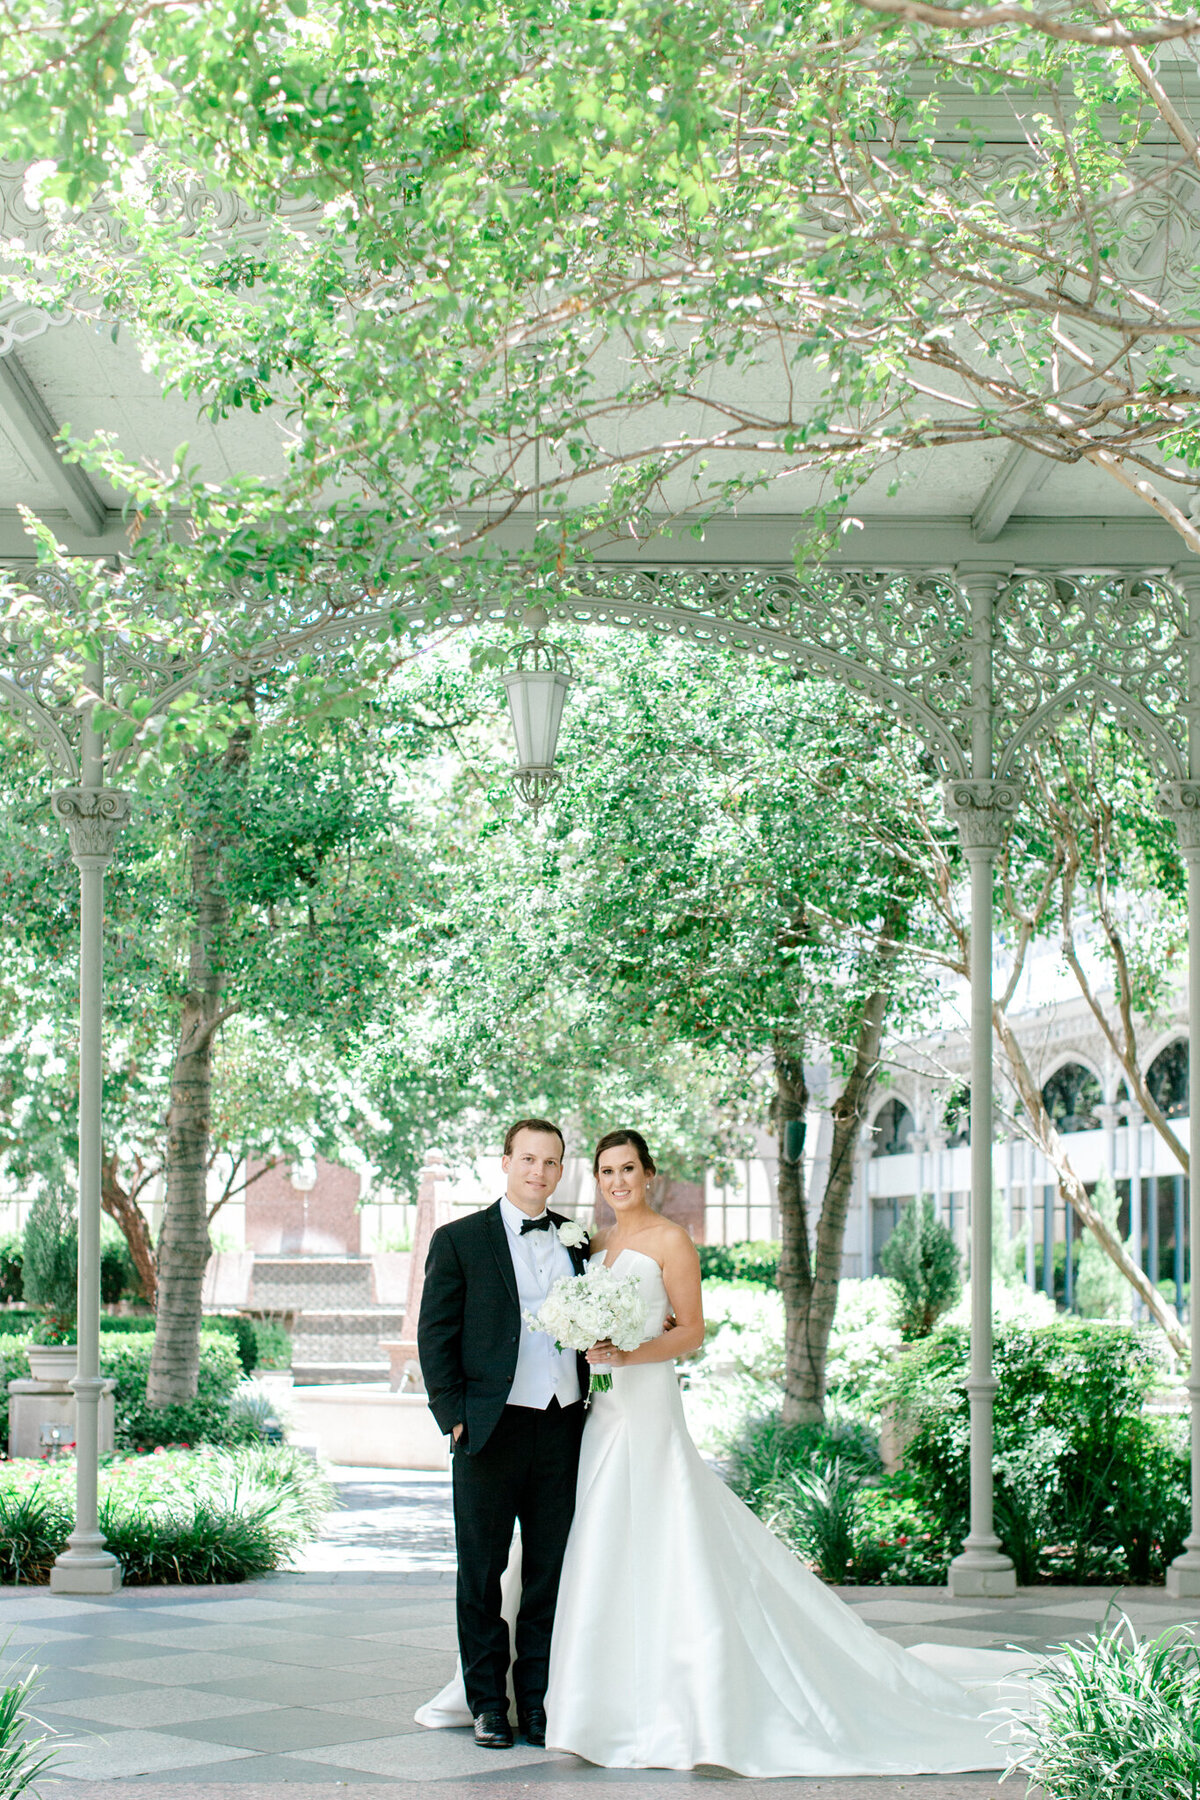 Wedding at the Crescent Court Hotel and Highland Park United Methodist Church in Dallas | Sami Kathryn Photography | DFW Wedding Photographer-1